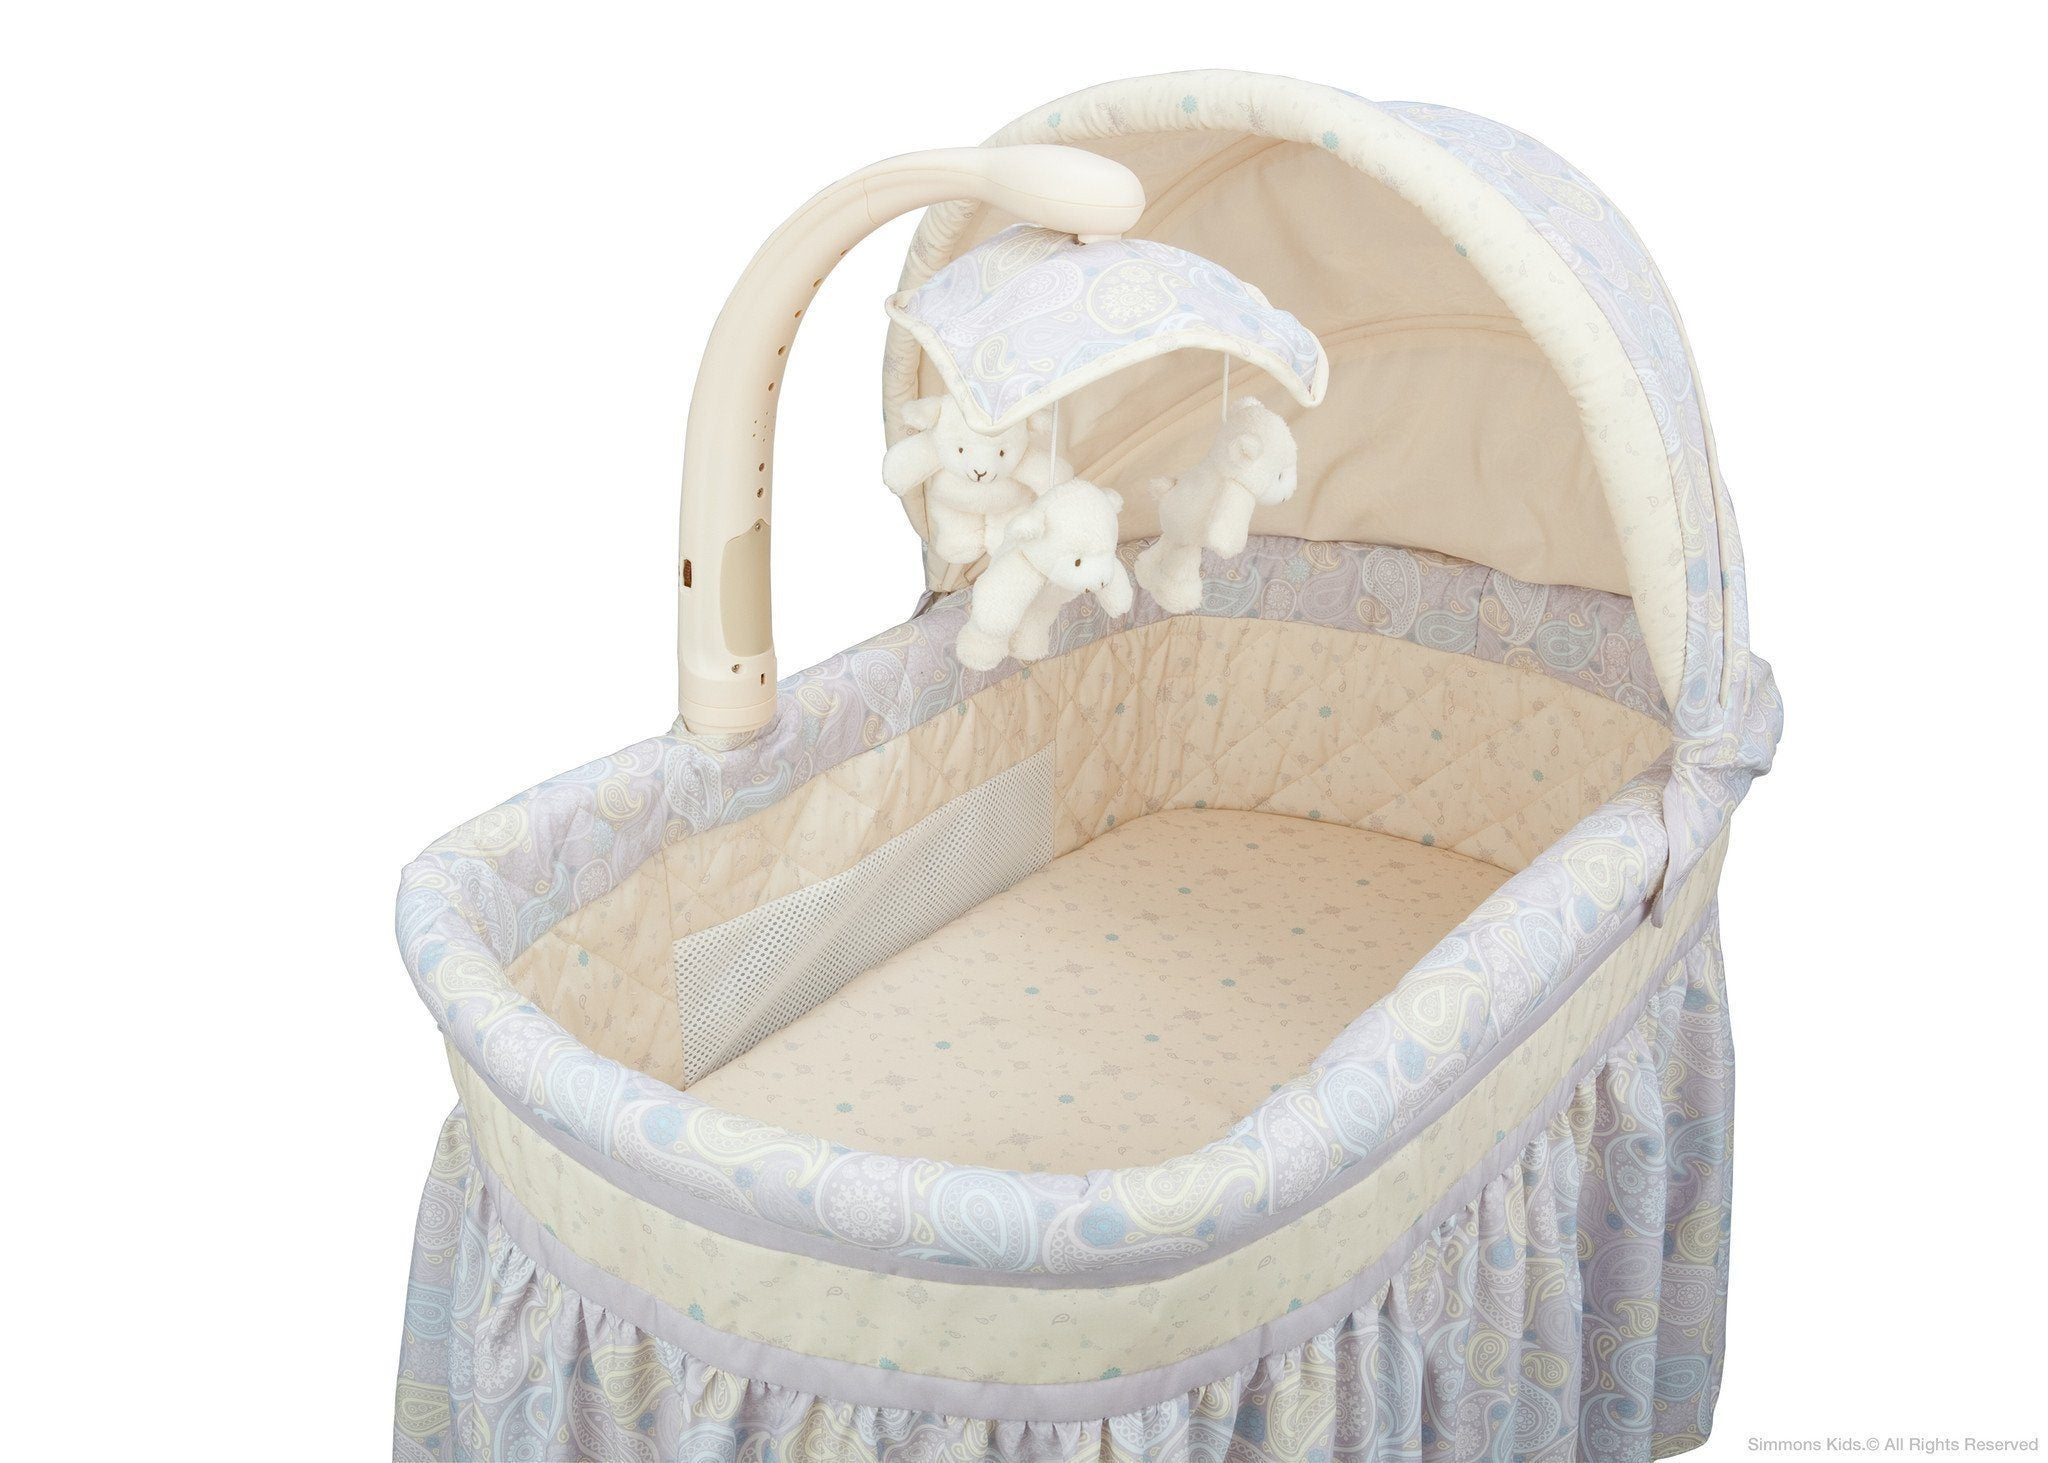 Simmons Kids Paisley Park (050) Deluxe Gliding Bassinet Inside View with Canopy Option a3a